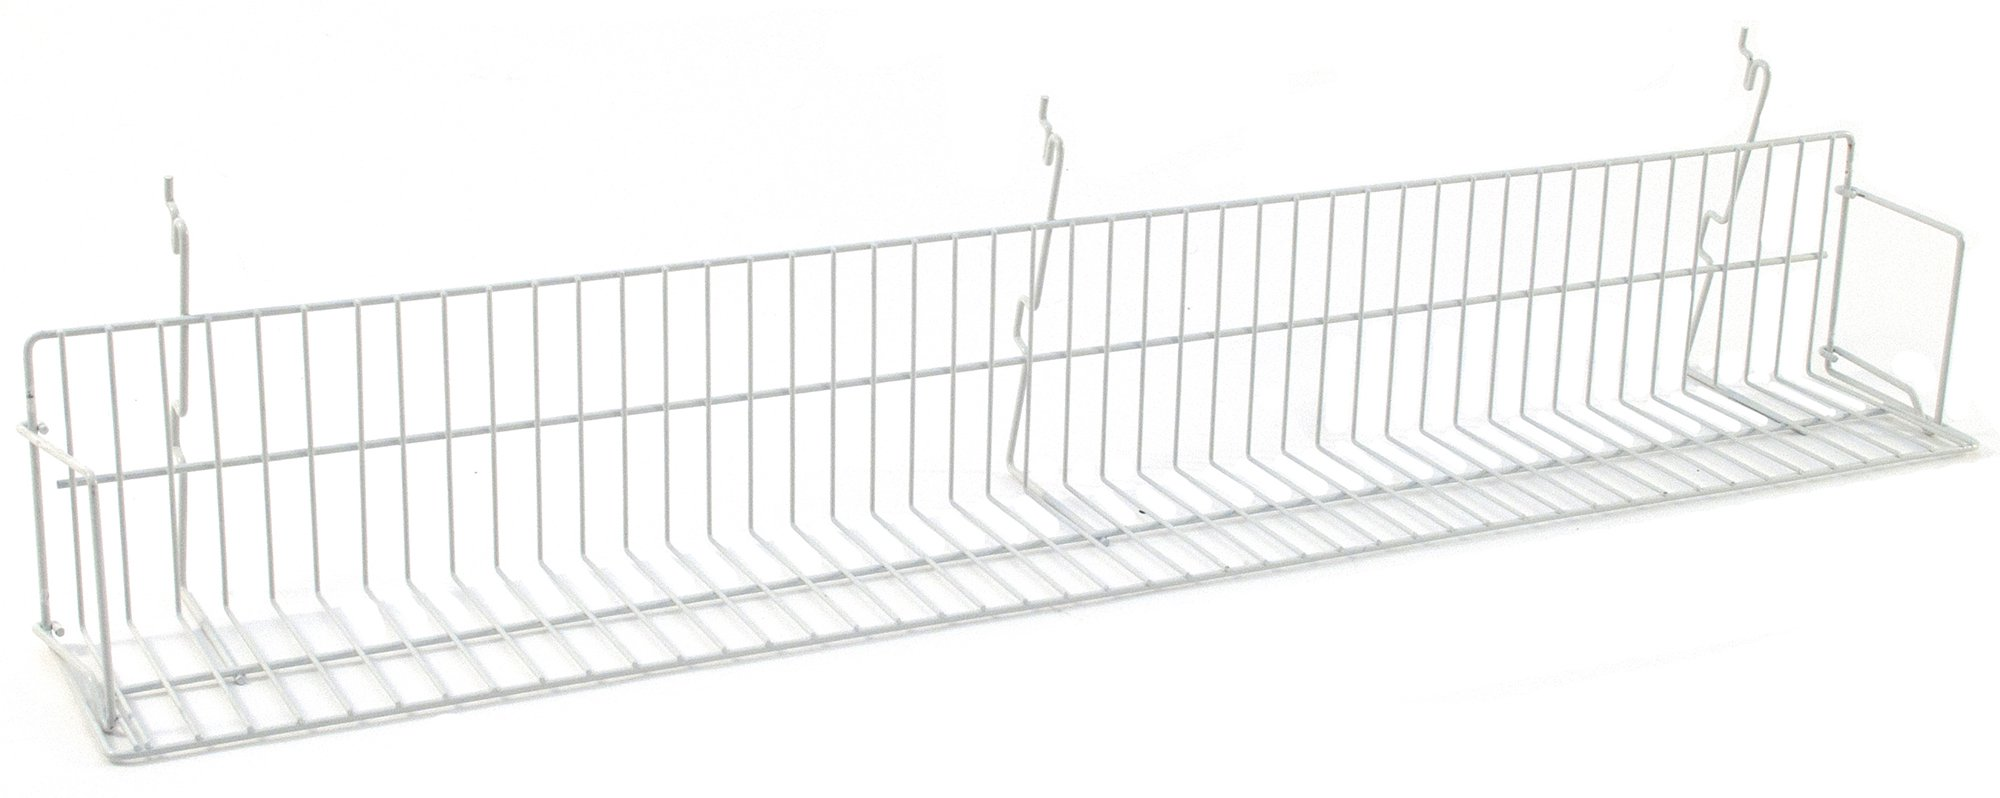 KC Store Fixtures A03053 Video Shelf Fits Slatwall, Grid, Pegboard, 46'' W, White (Pack of 5)